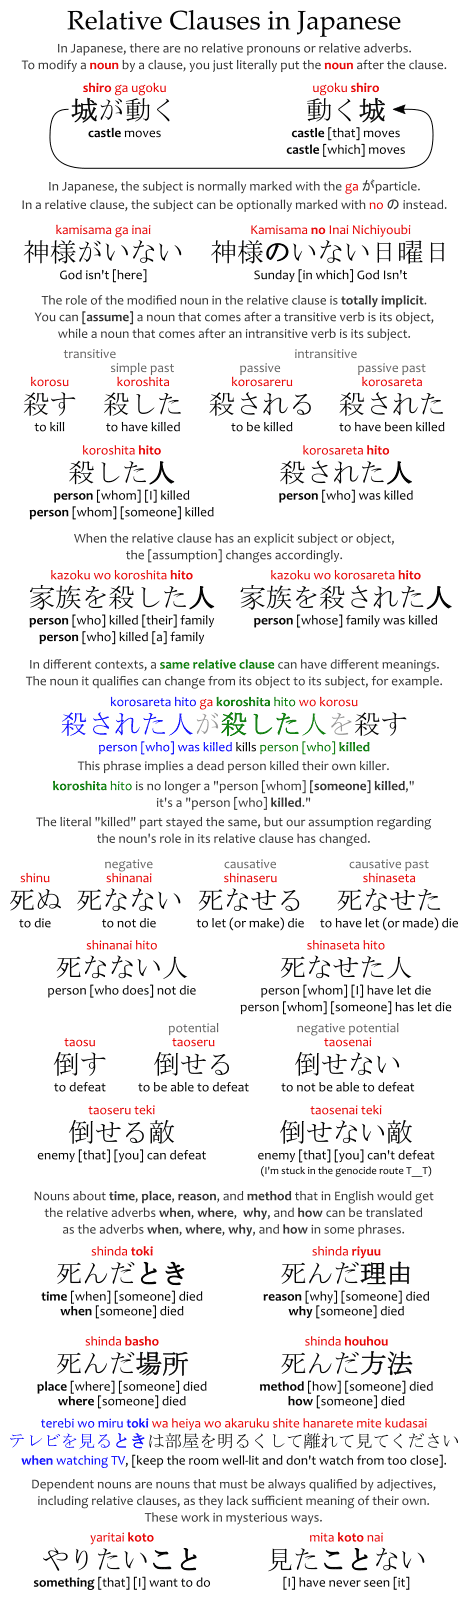 Cheat sheet for relative clauses in Japanese.